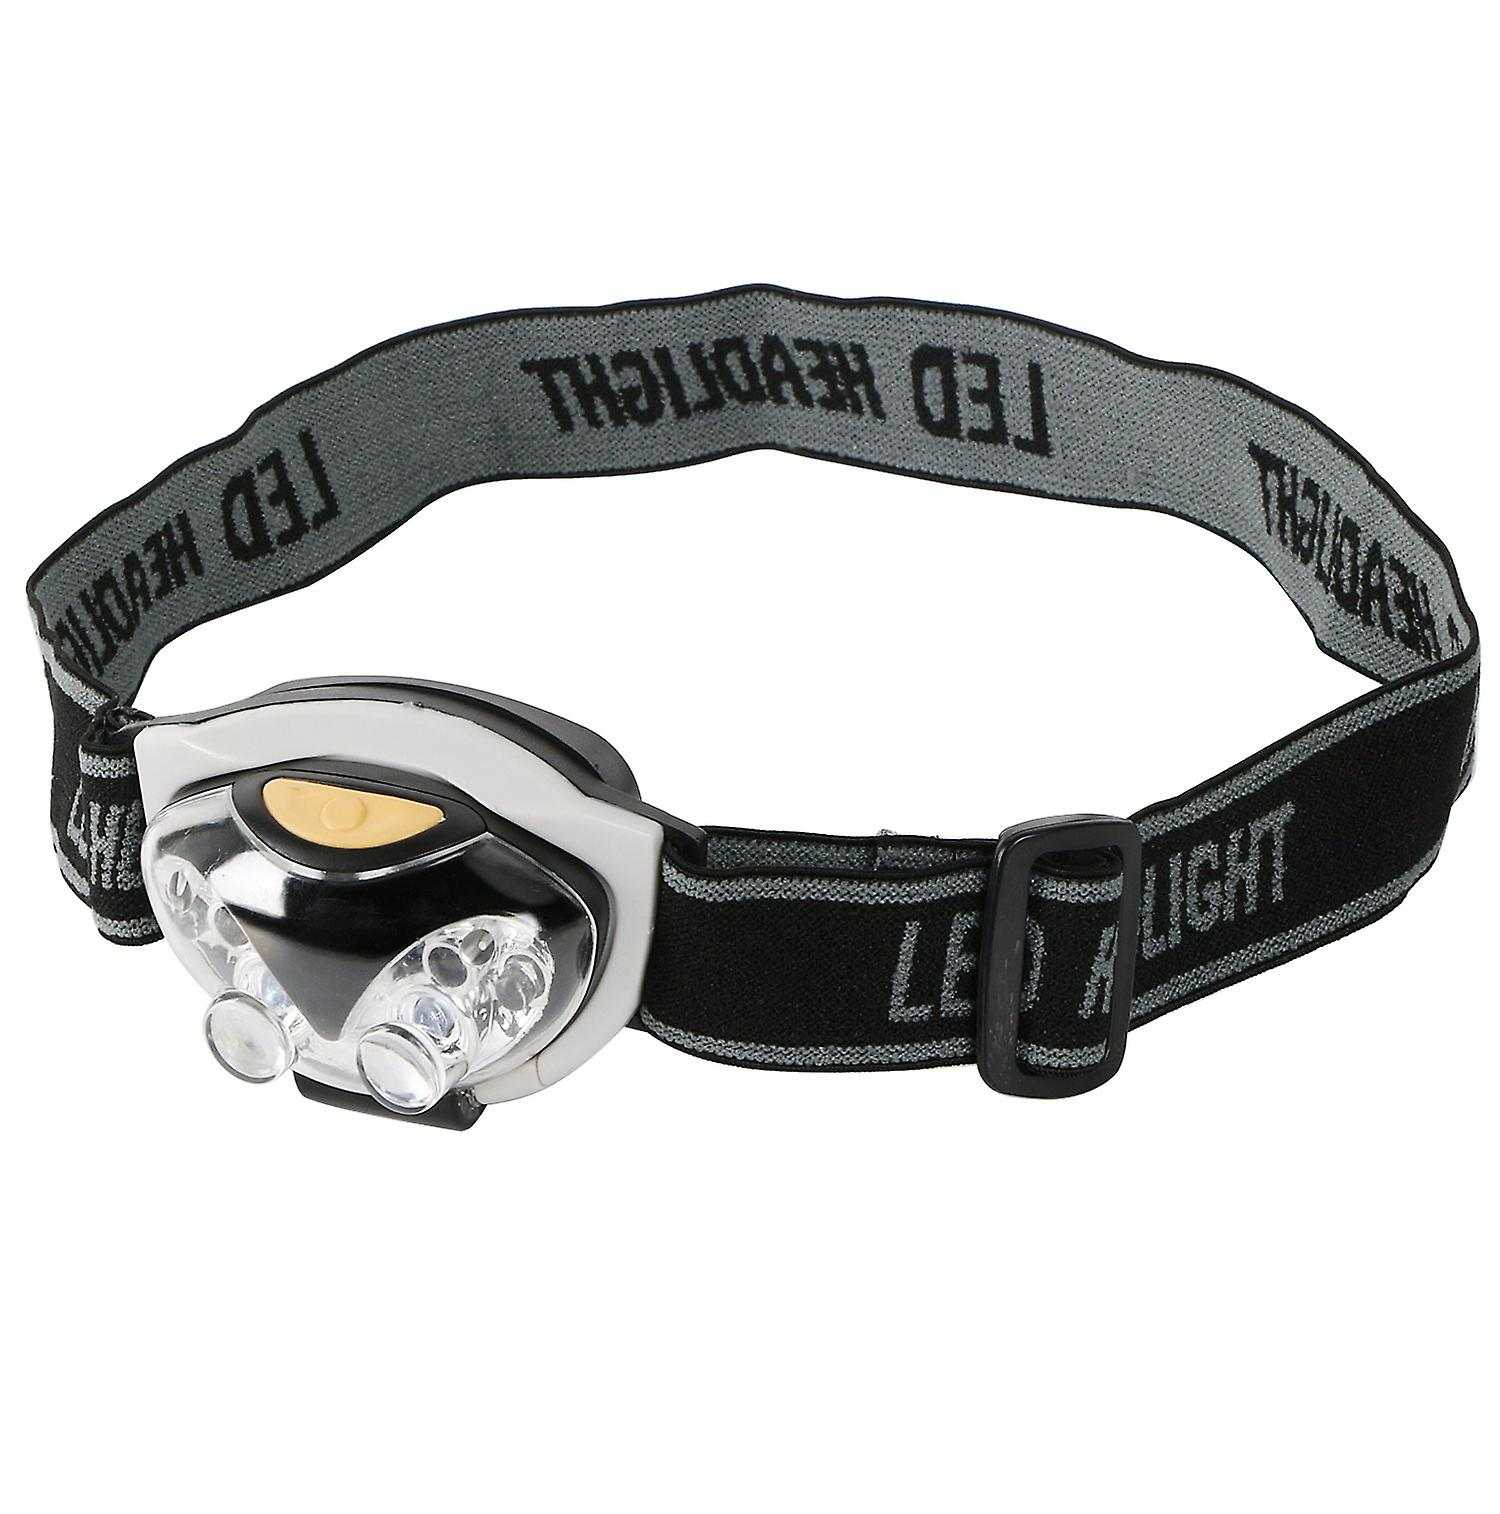 TRIXES 6 LED Adjustable Headband Light Camping Walking Hands Free Safety Torch - Perfect for Running, Cycling, Hiking, R